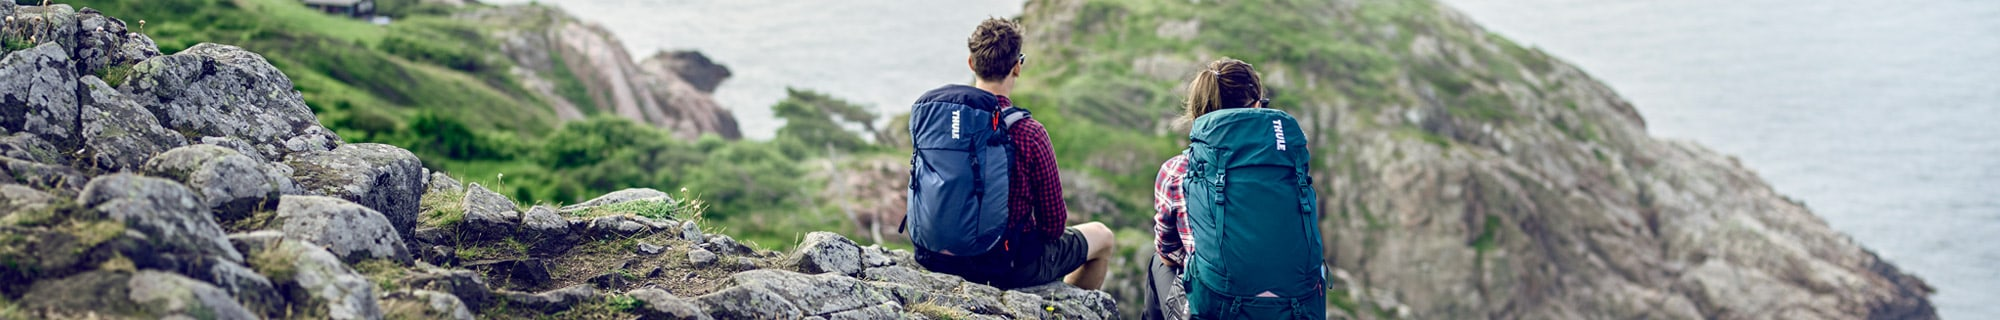 Thule hiking backpacks